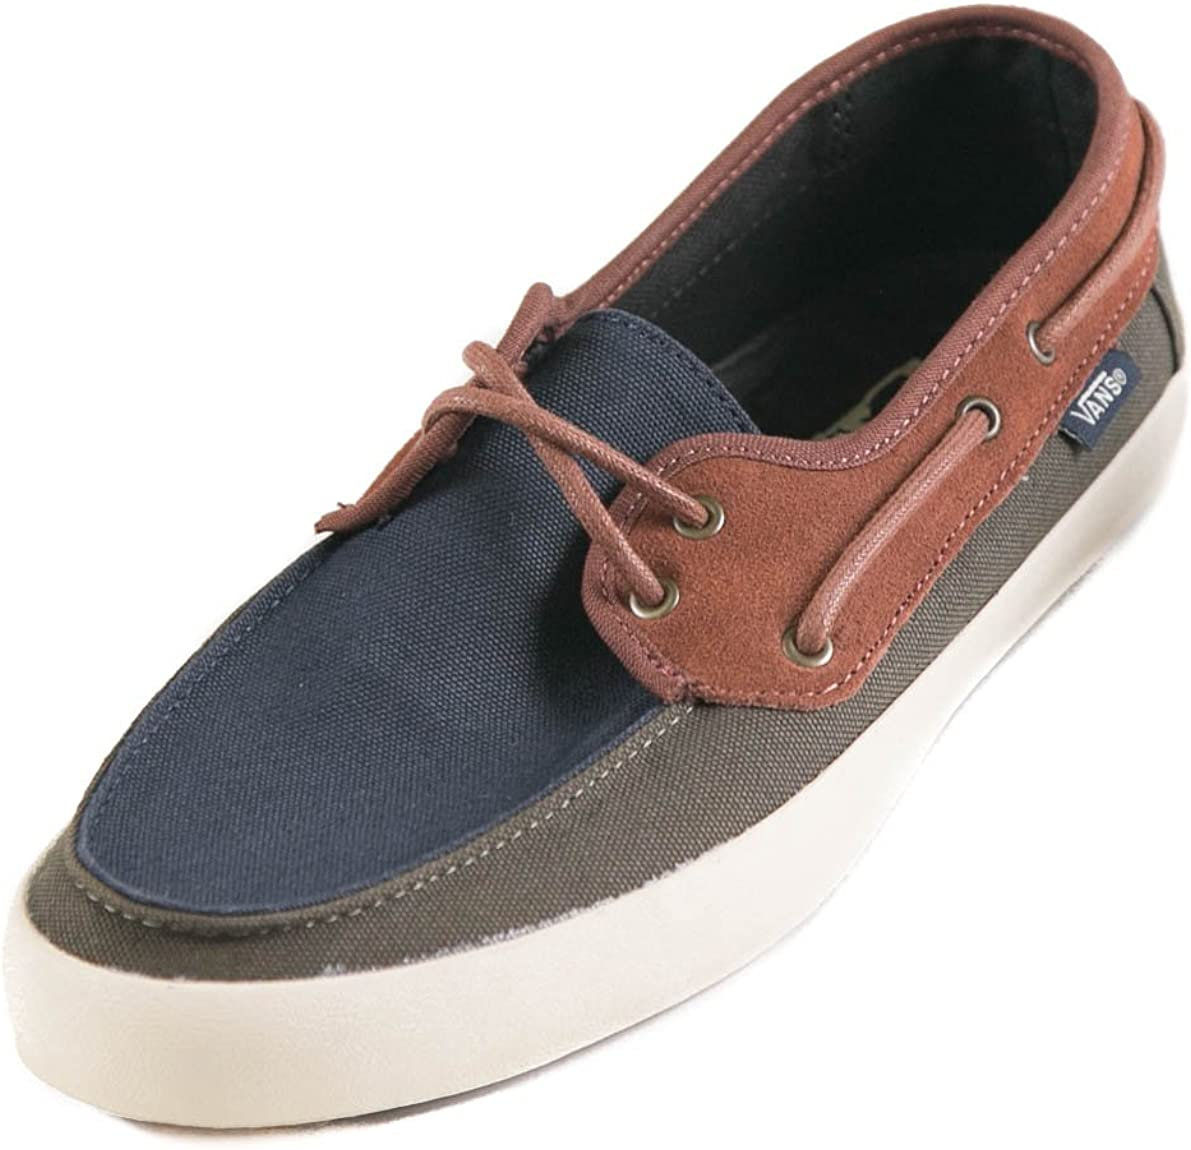 Tone Boating Shoes Navy/Forest/Brown